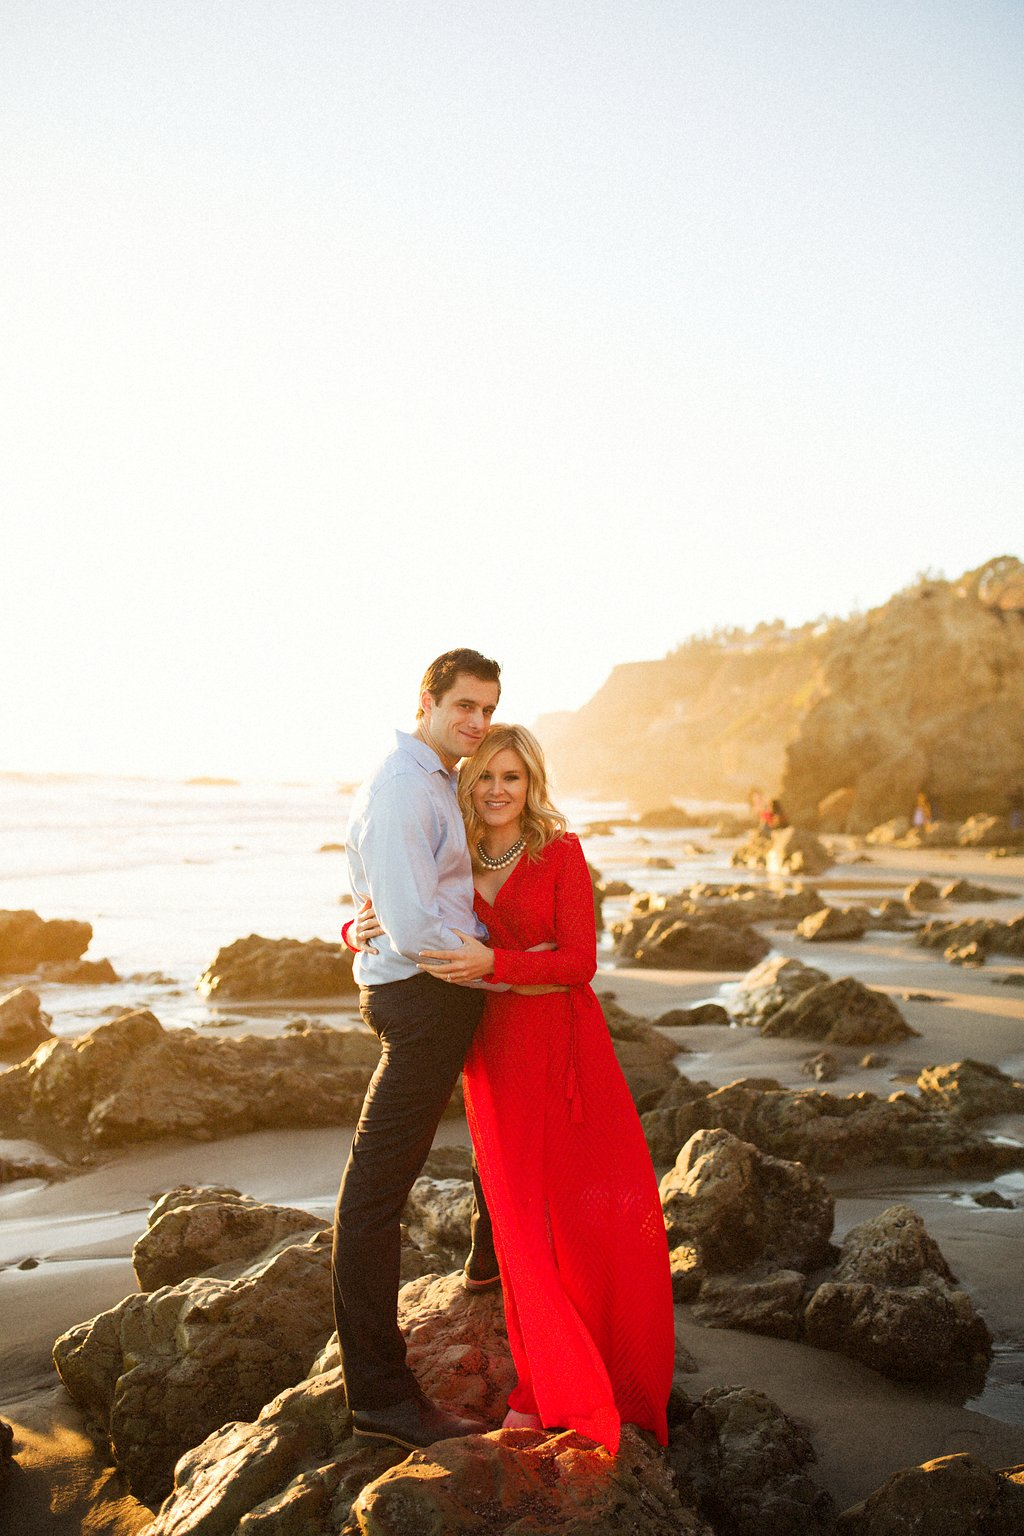 BETSI EWING STUDIO_MALIBU CALIFORNIA ENGAGEMENT_0022.JPG